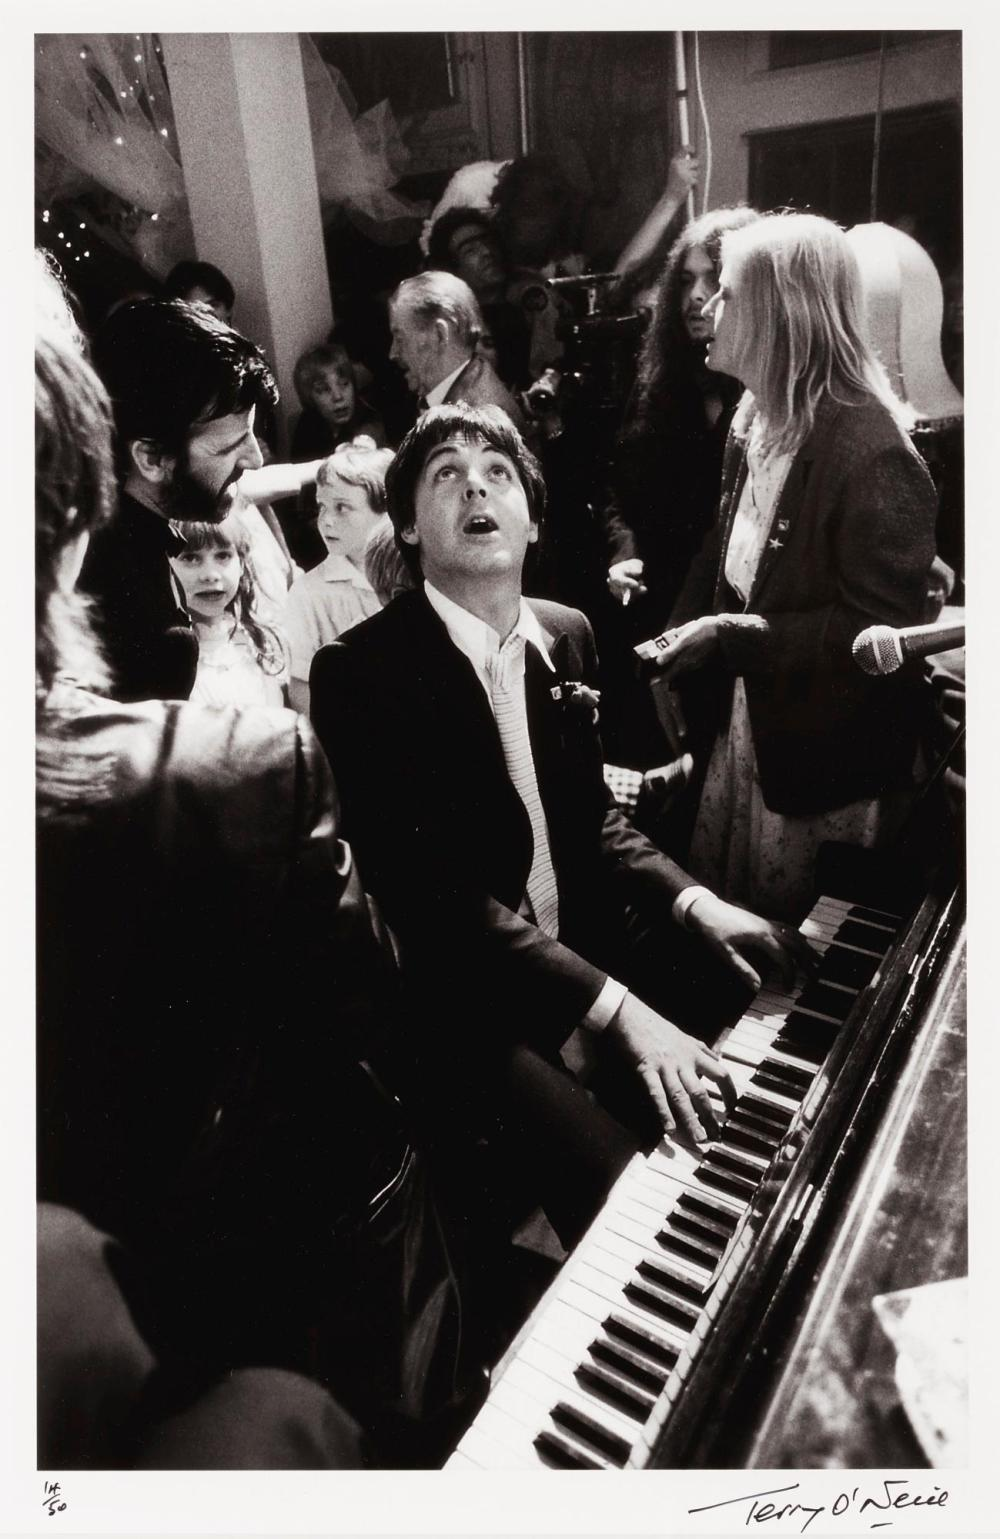 TERRY O'NEILL | Paul McCartney at Ringo Starr's Wedding, 1981